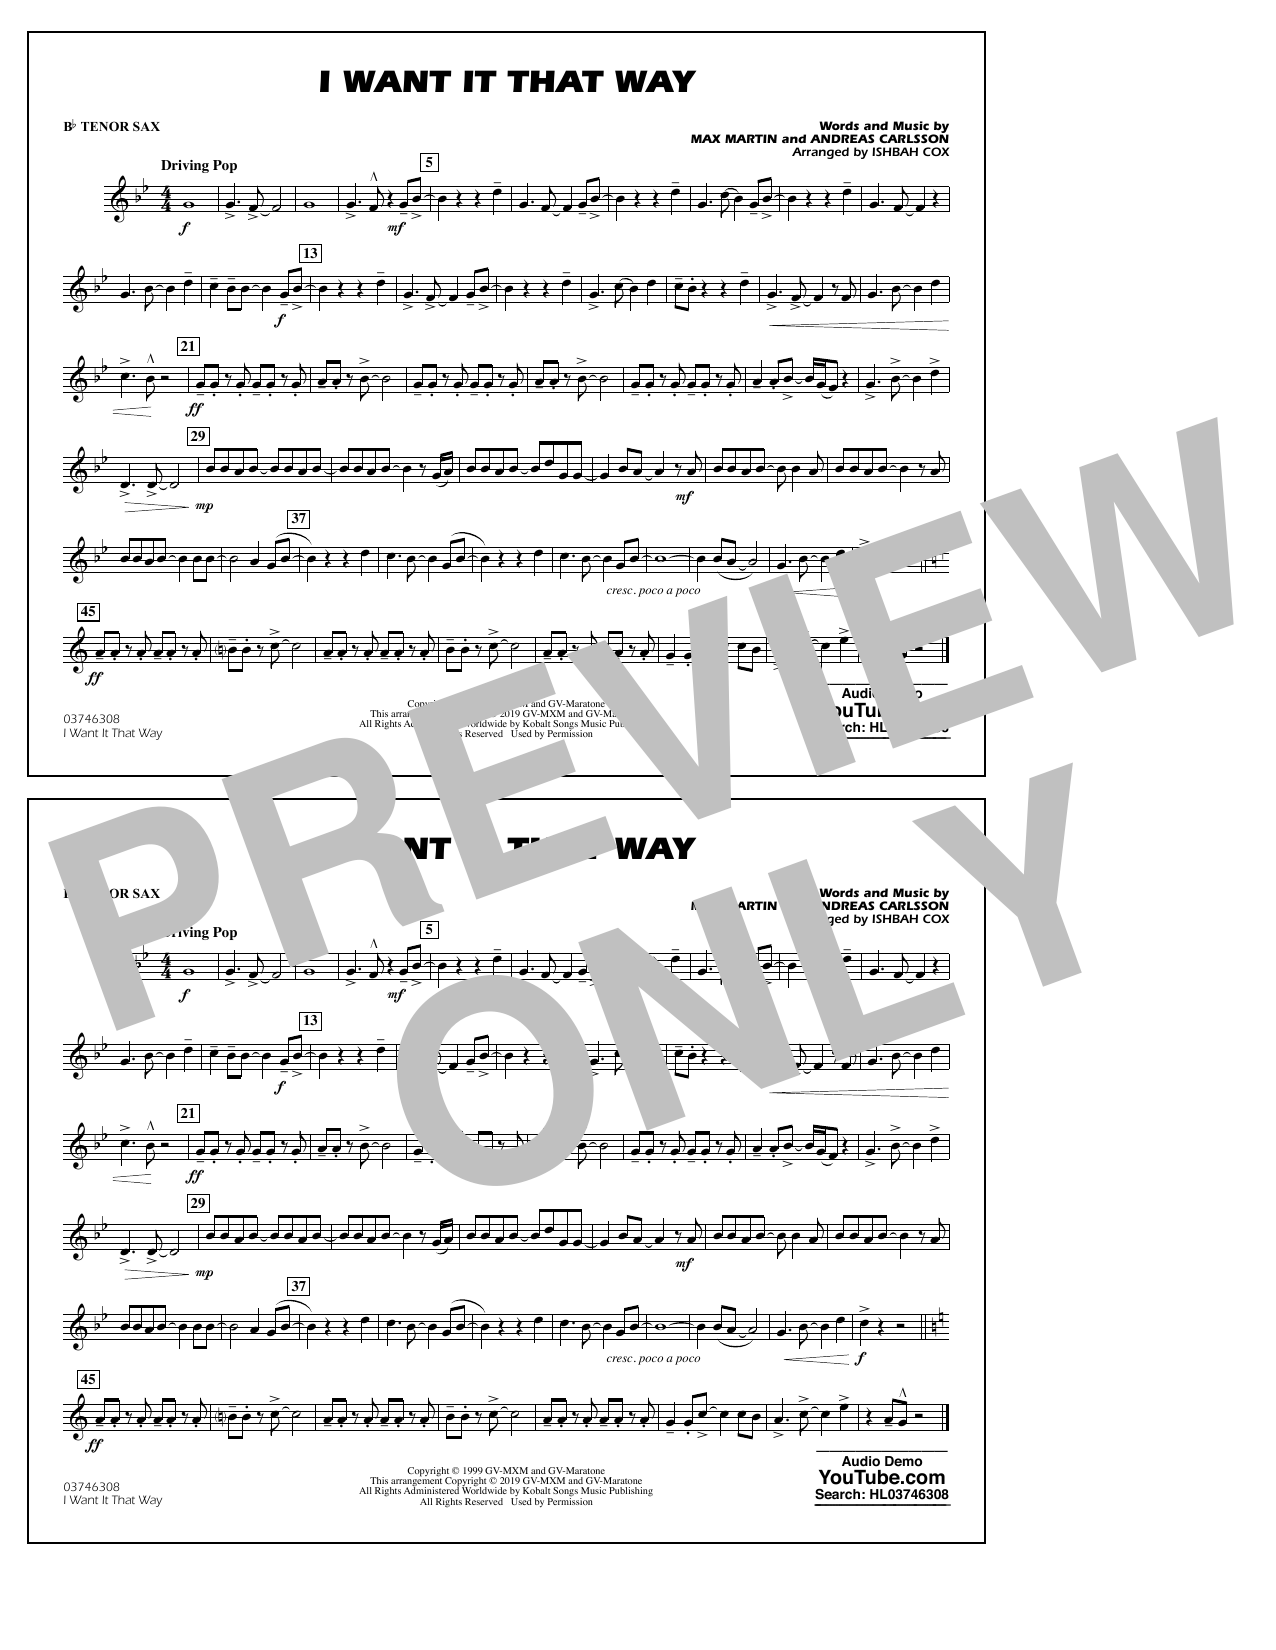 Backstreet Boys I Want It That Way (arr. Ishbah Cox) - Bb Tenor Sax sheet music notes and chords